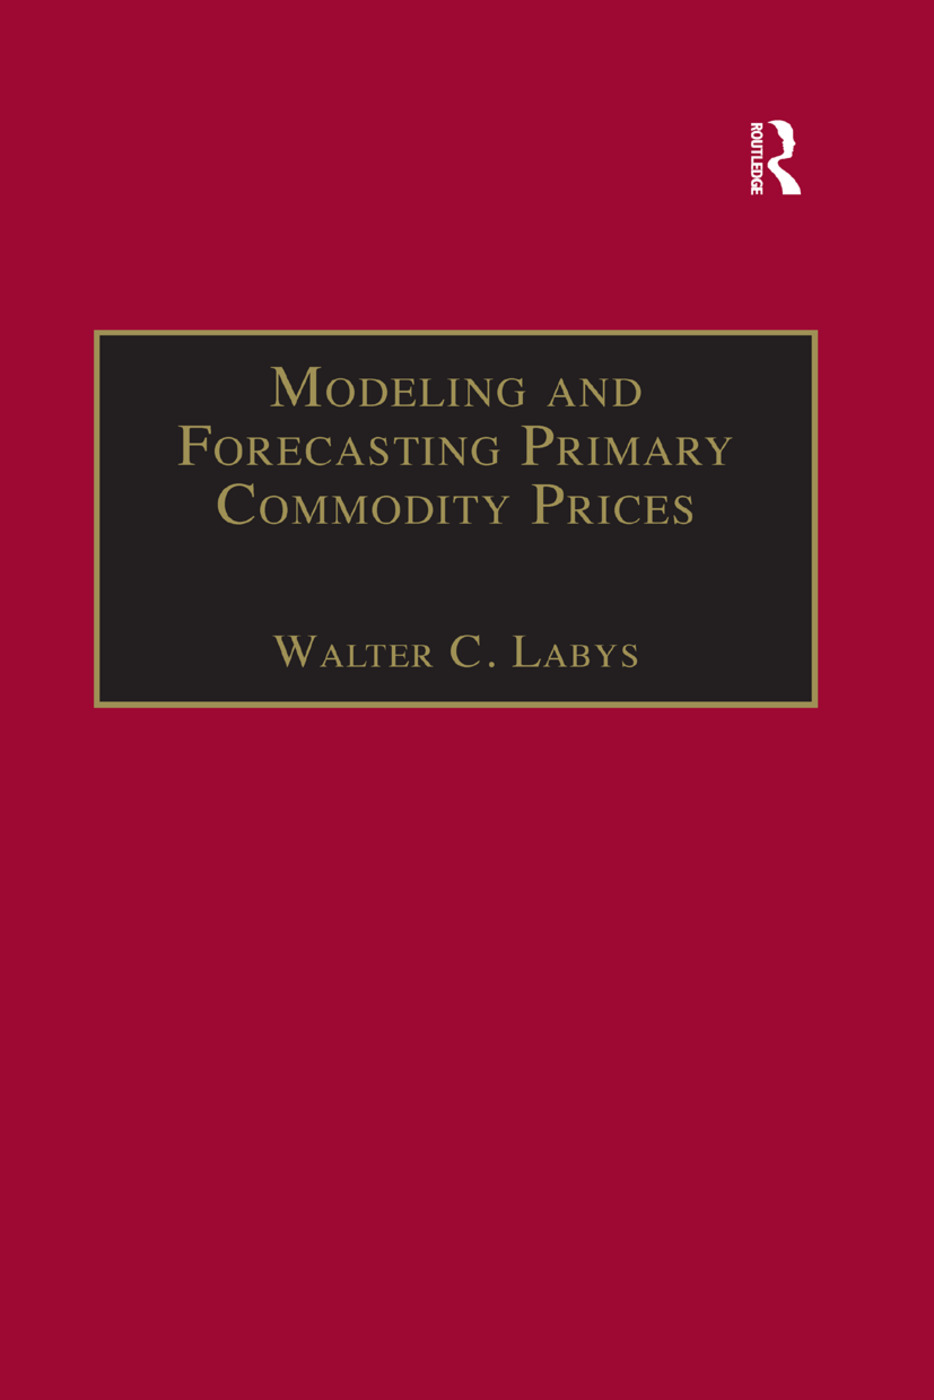 Modeling and Forecasting Primary Commodity Prices book cover